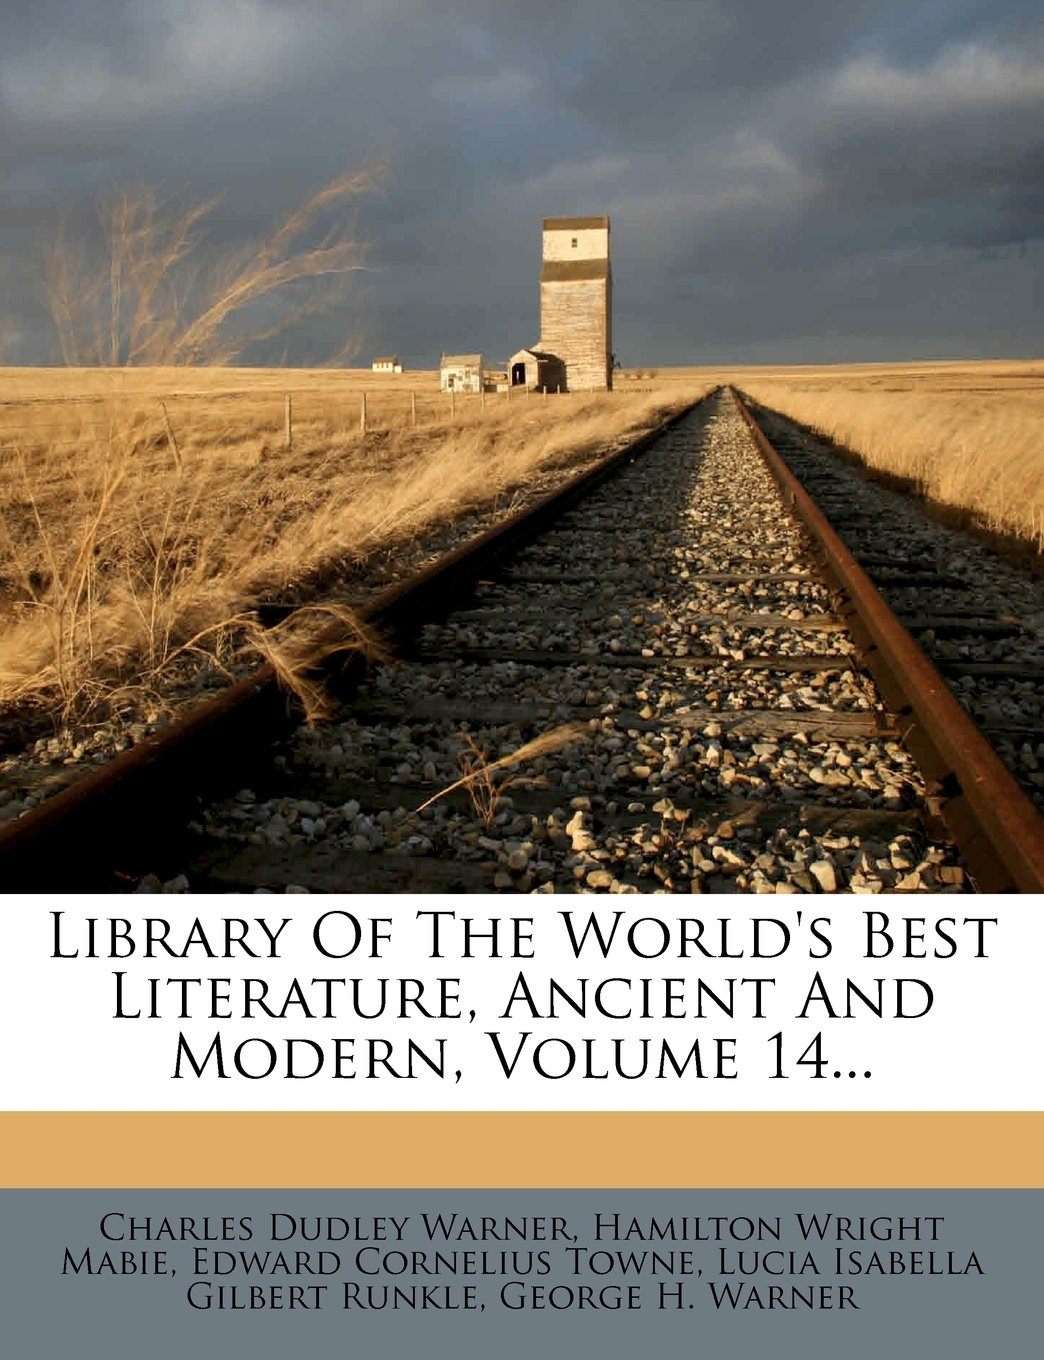 Library Of The World's Best Literature, Ancient And Modern, Volume 14... pdf